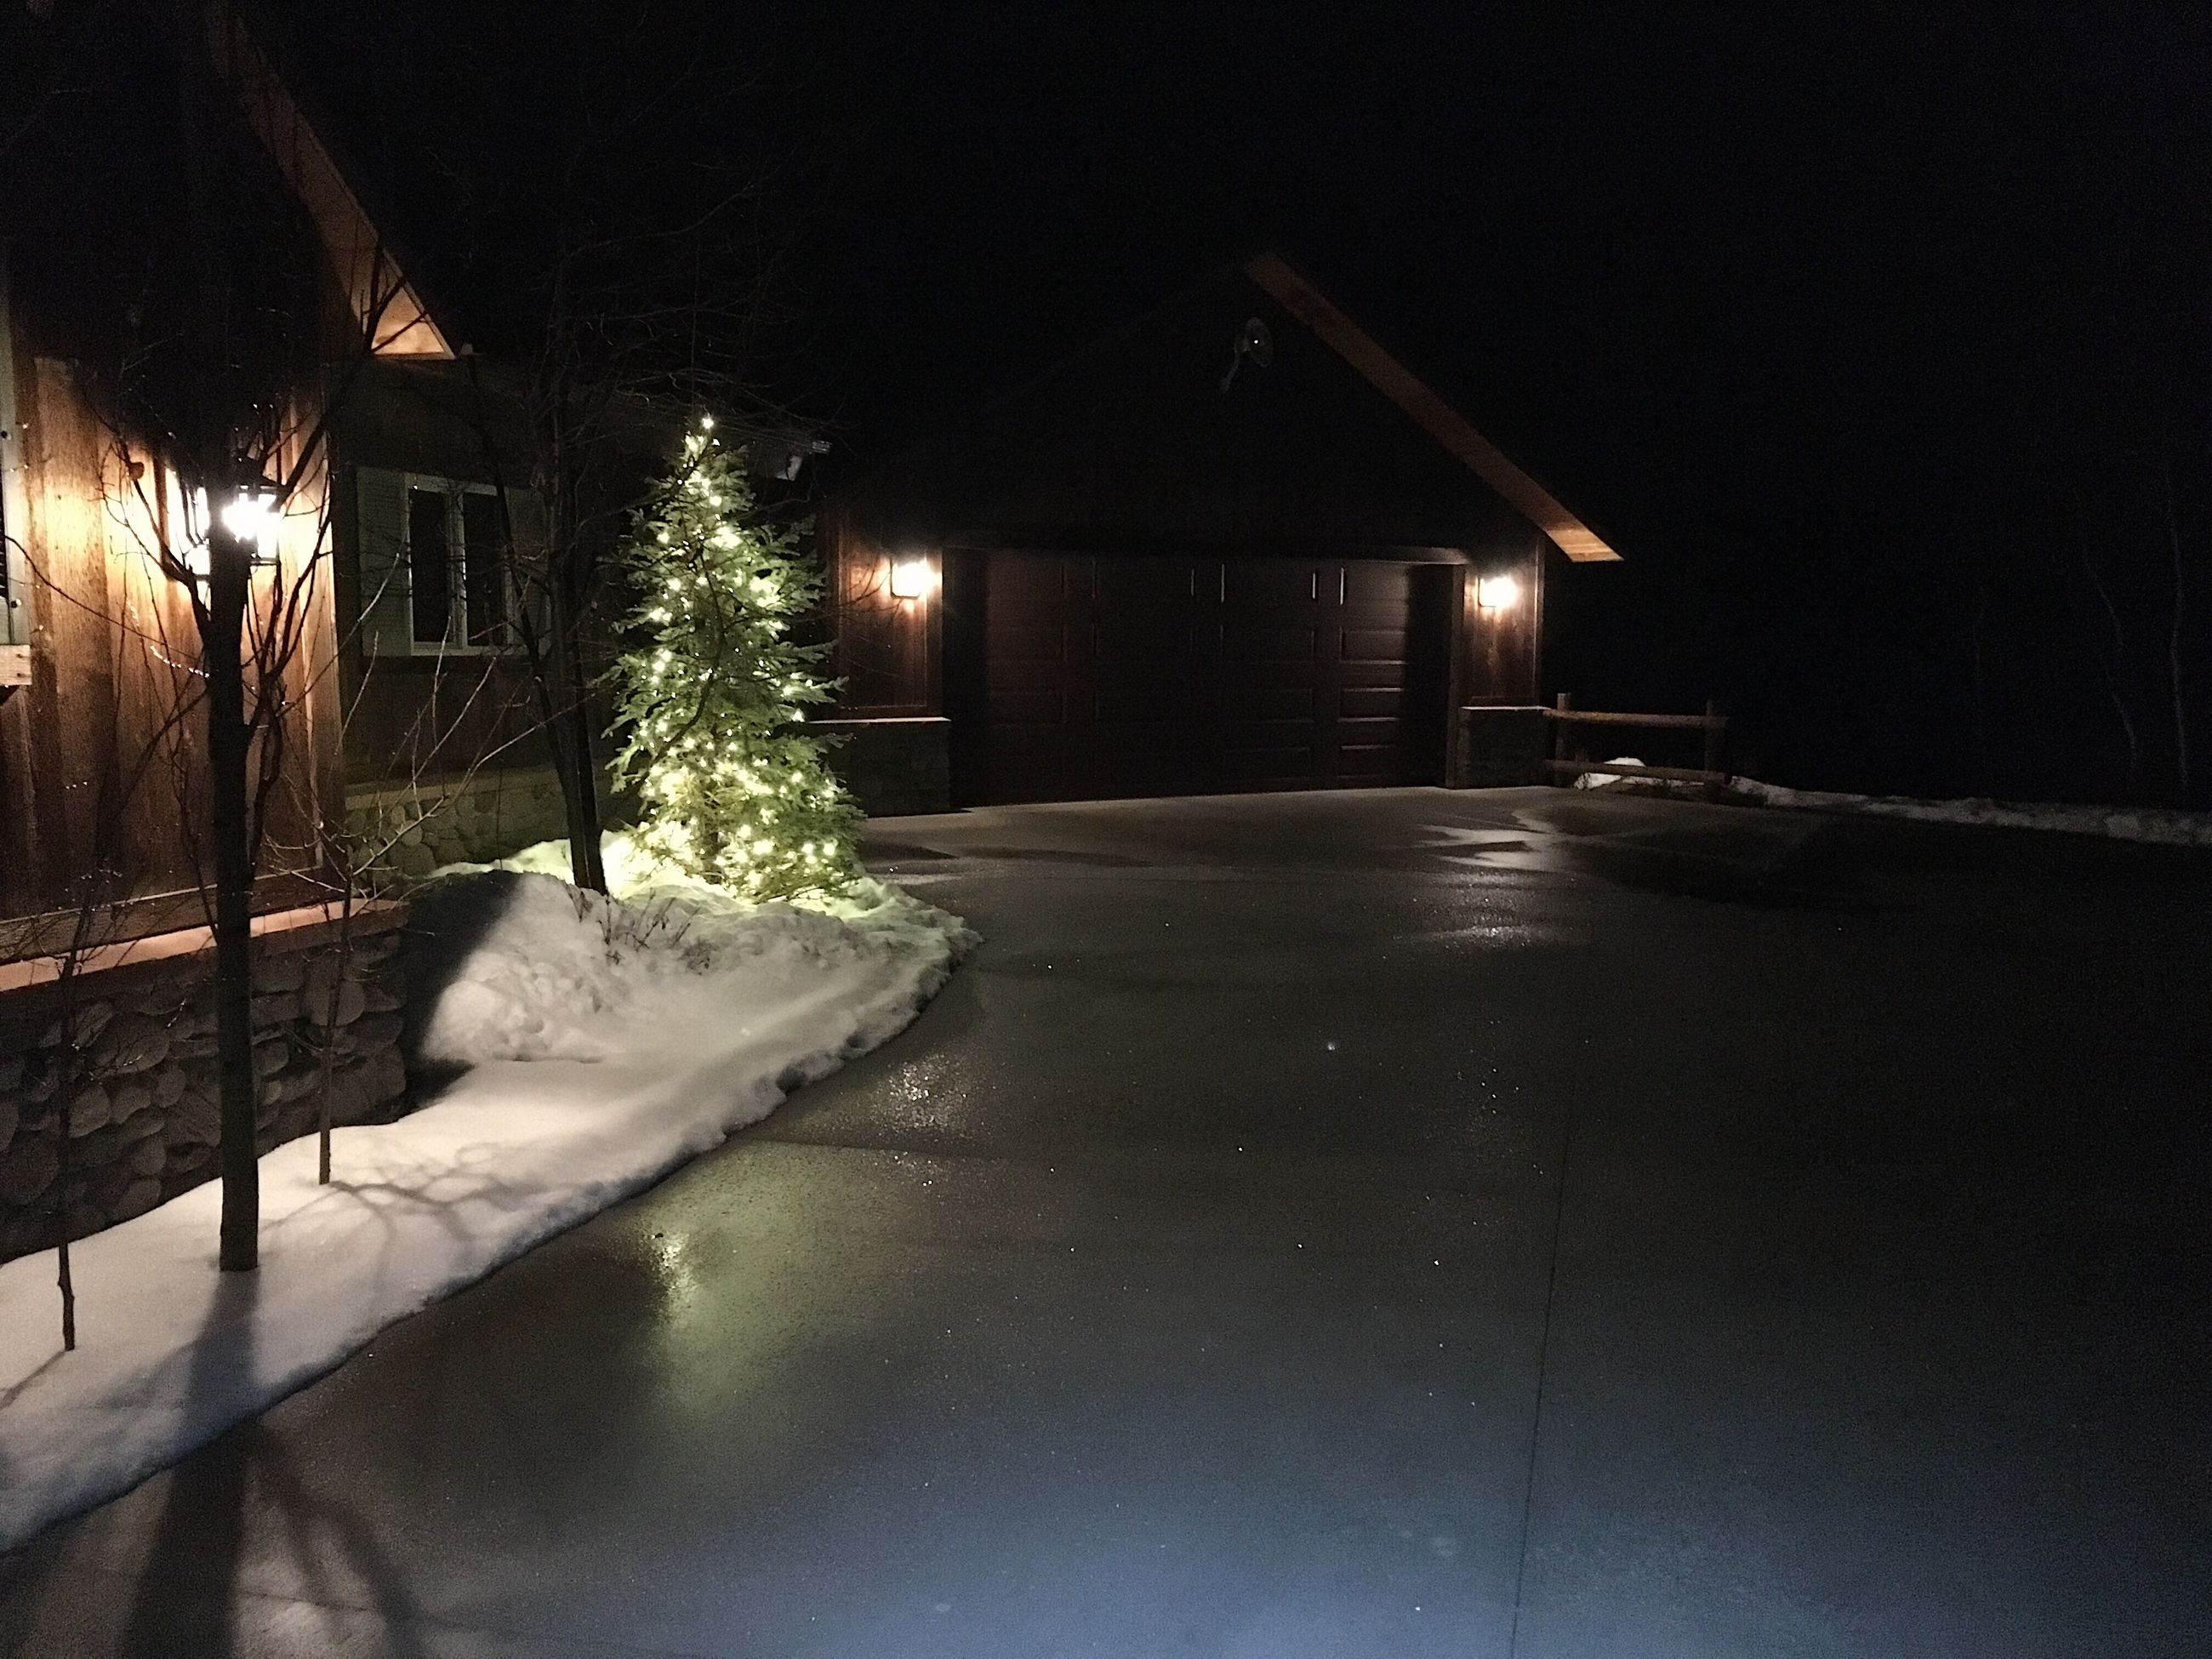 night, winter, snow, illuminated, cold temperature, no people, built structure, building exterior, architecture, frozen, outdoors, nature, tree